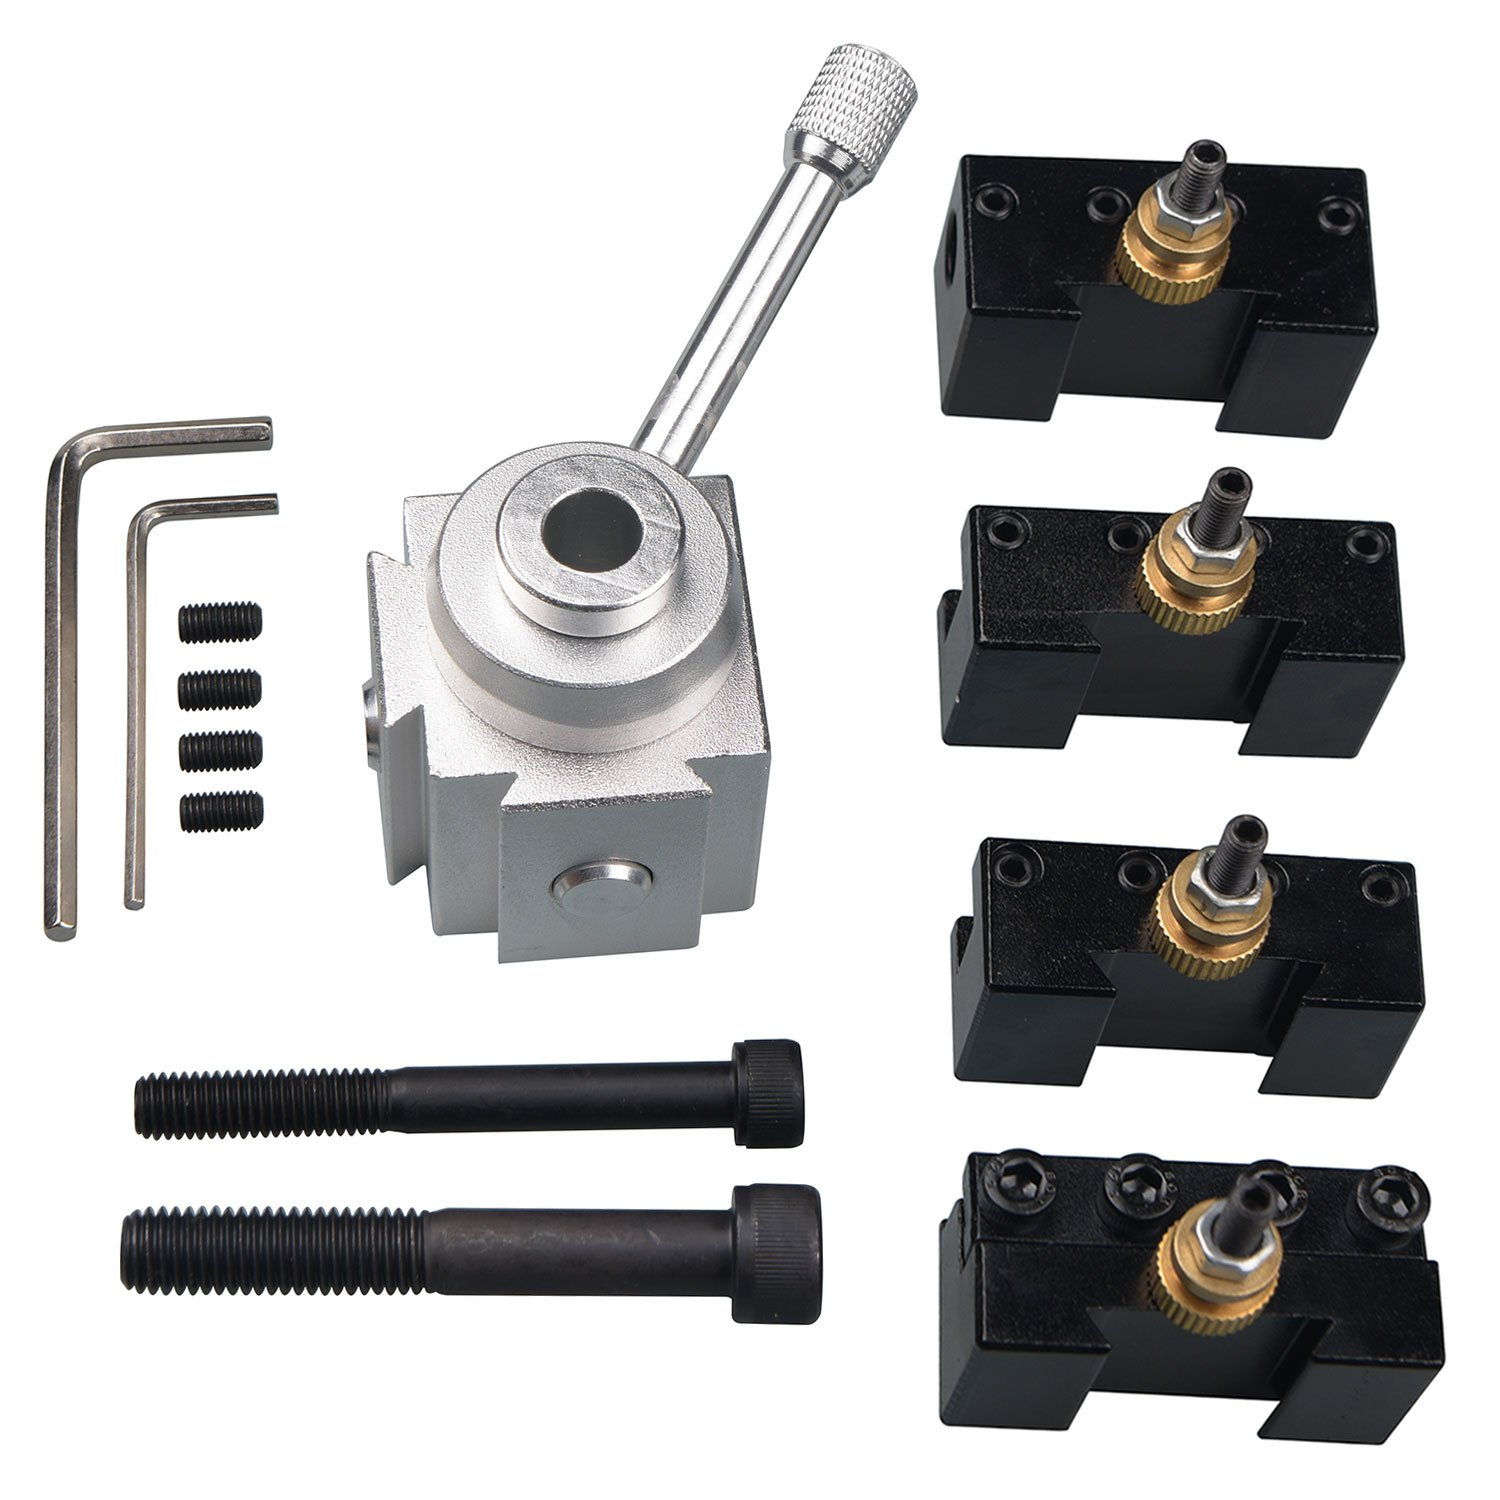 GDHXW H-055 Type Quick Change Tool Post Set For Mini Lathe Steel Mterial